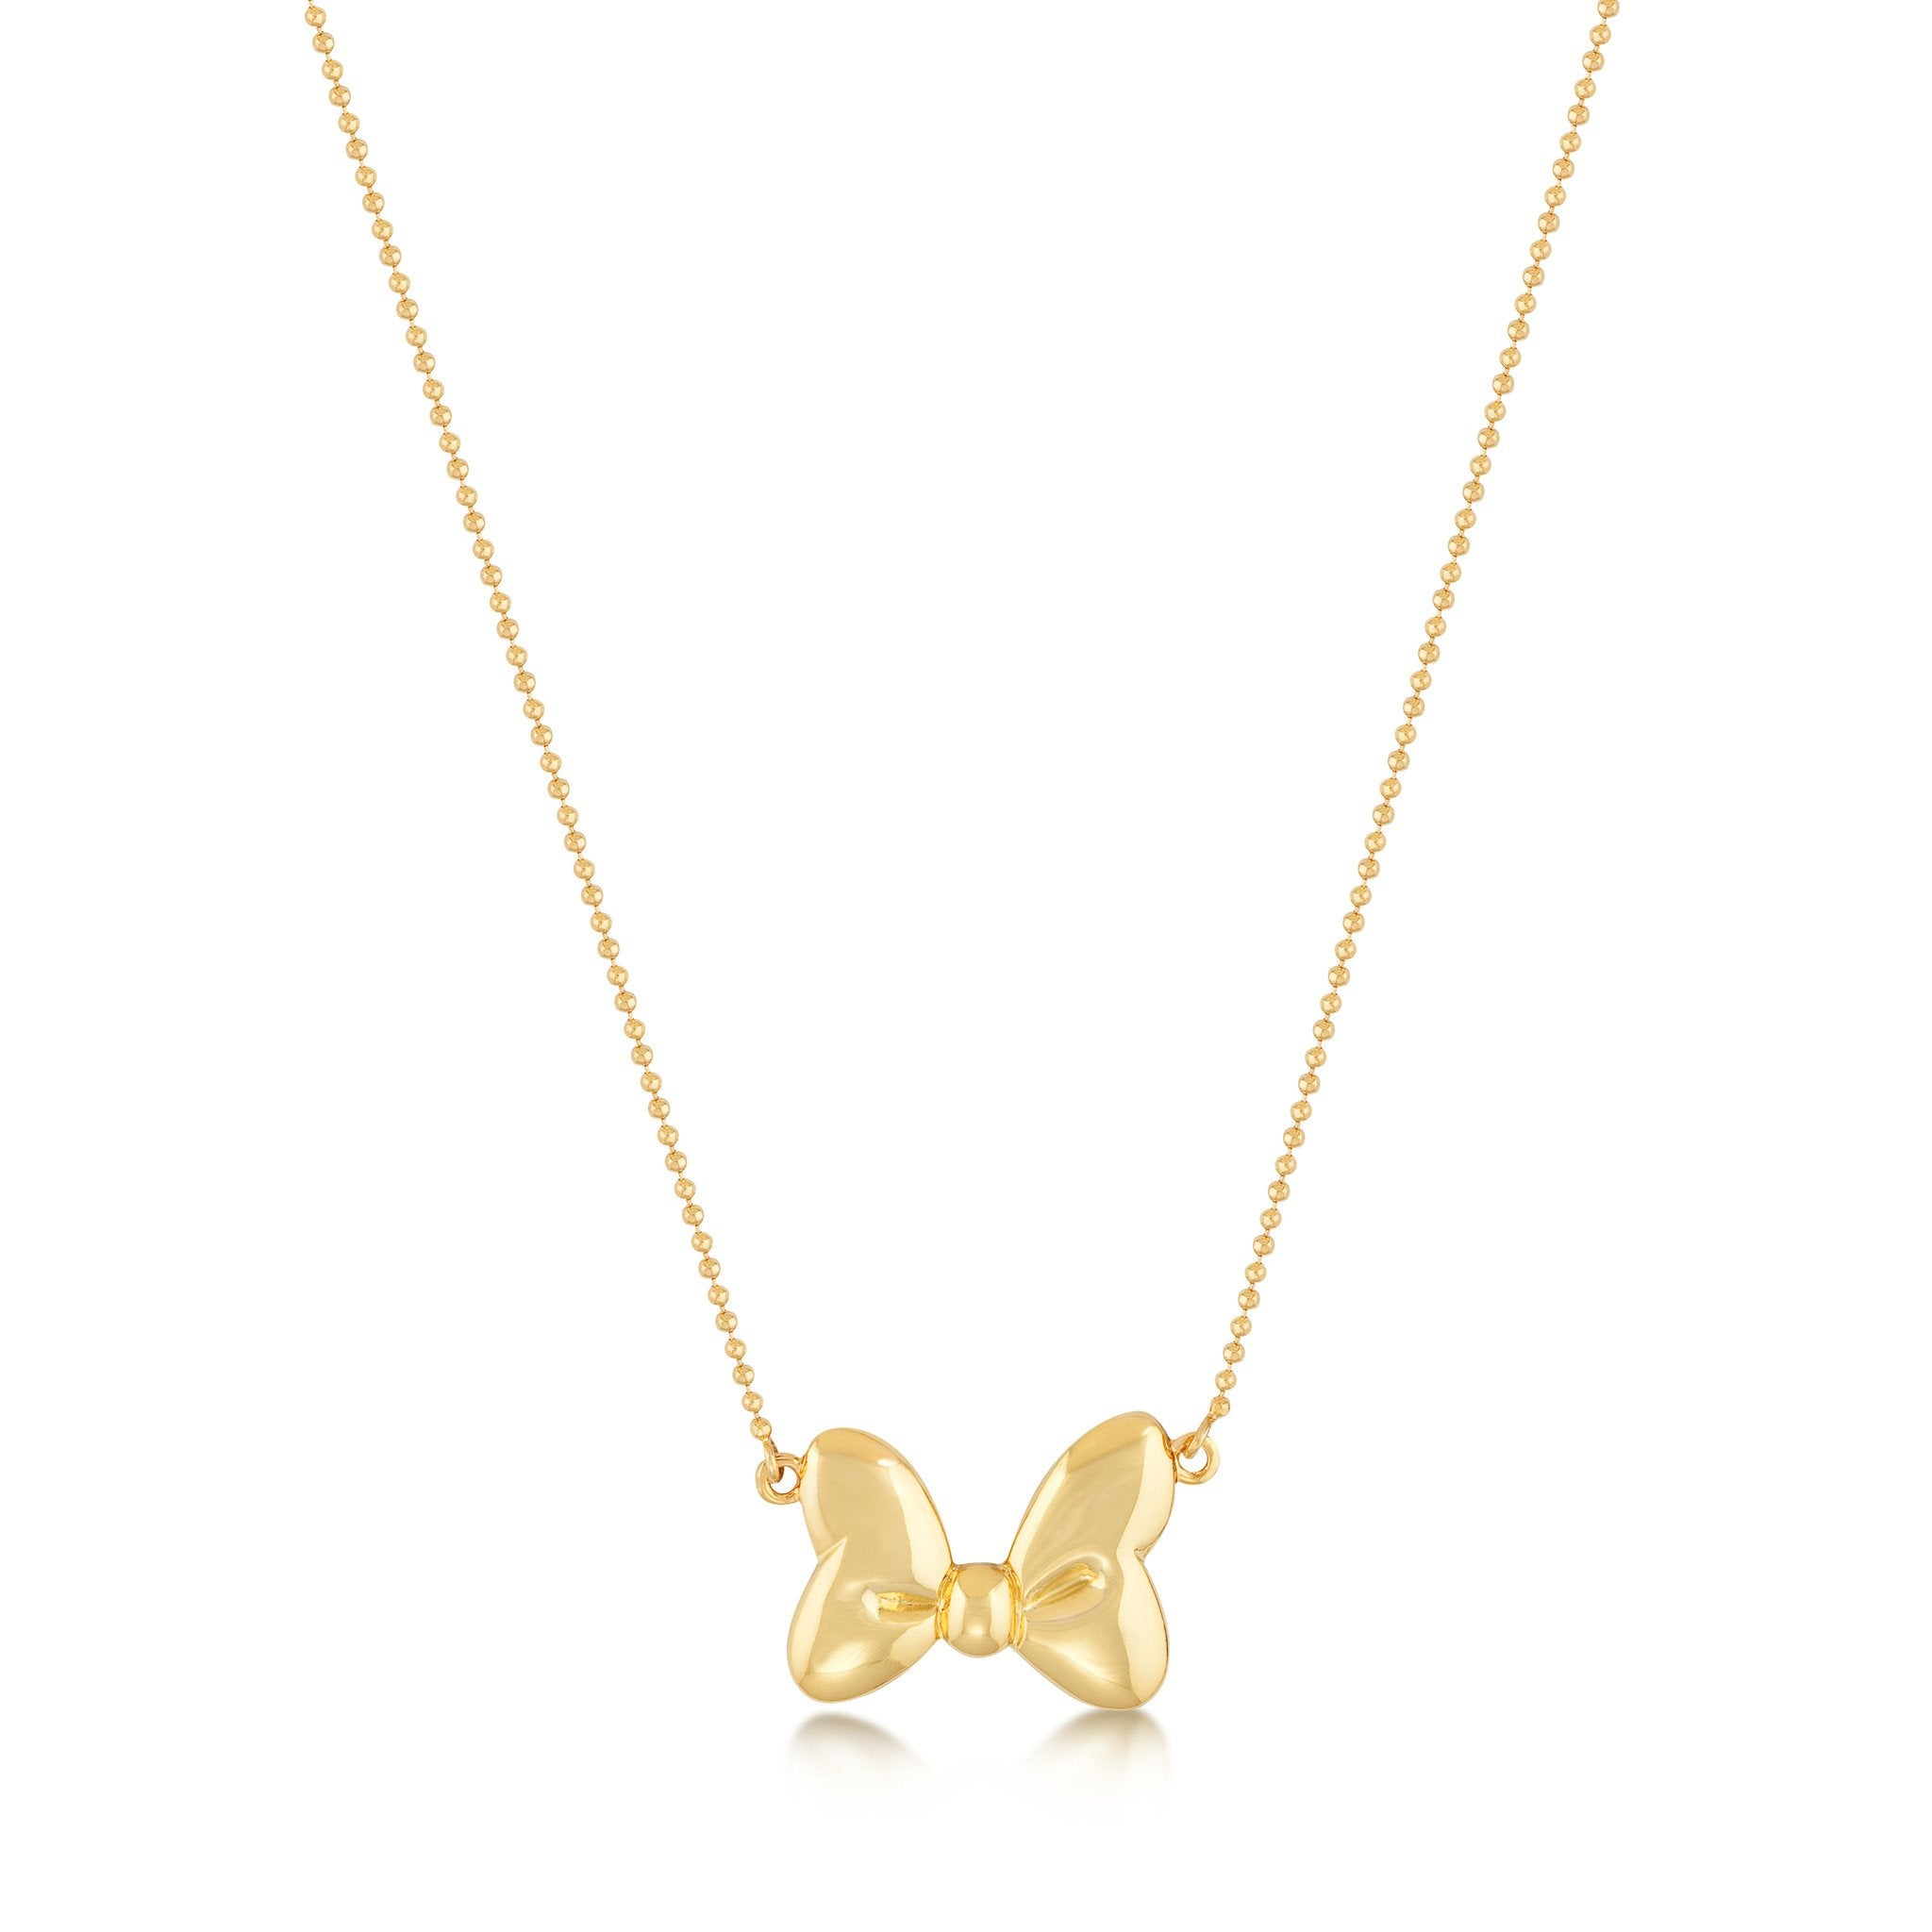 spade york pendant gallery in necklace new skinny gold lyst metallic jewelry rose mini product kate bow